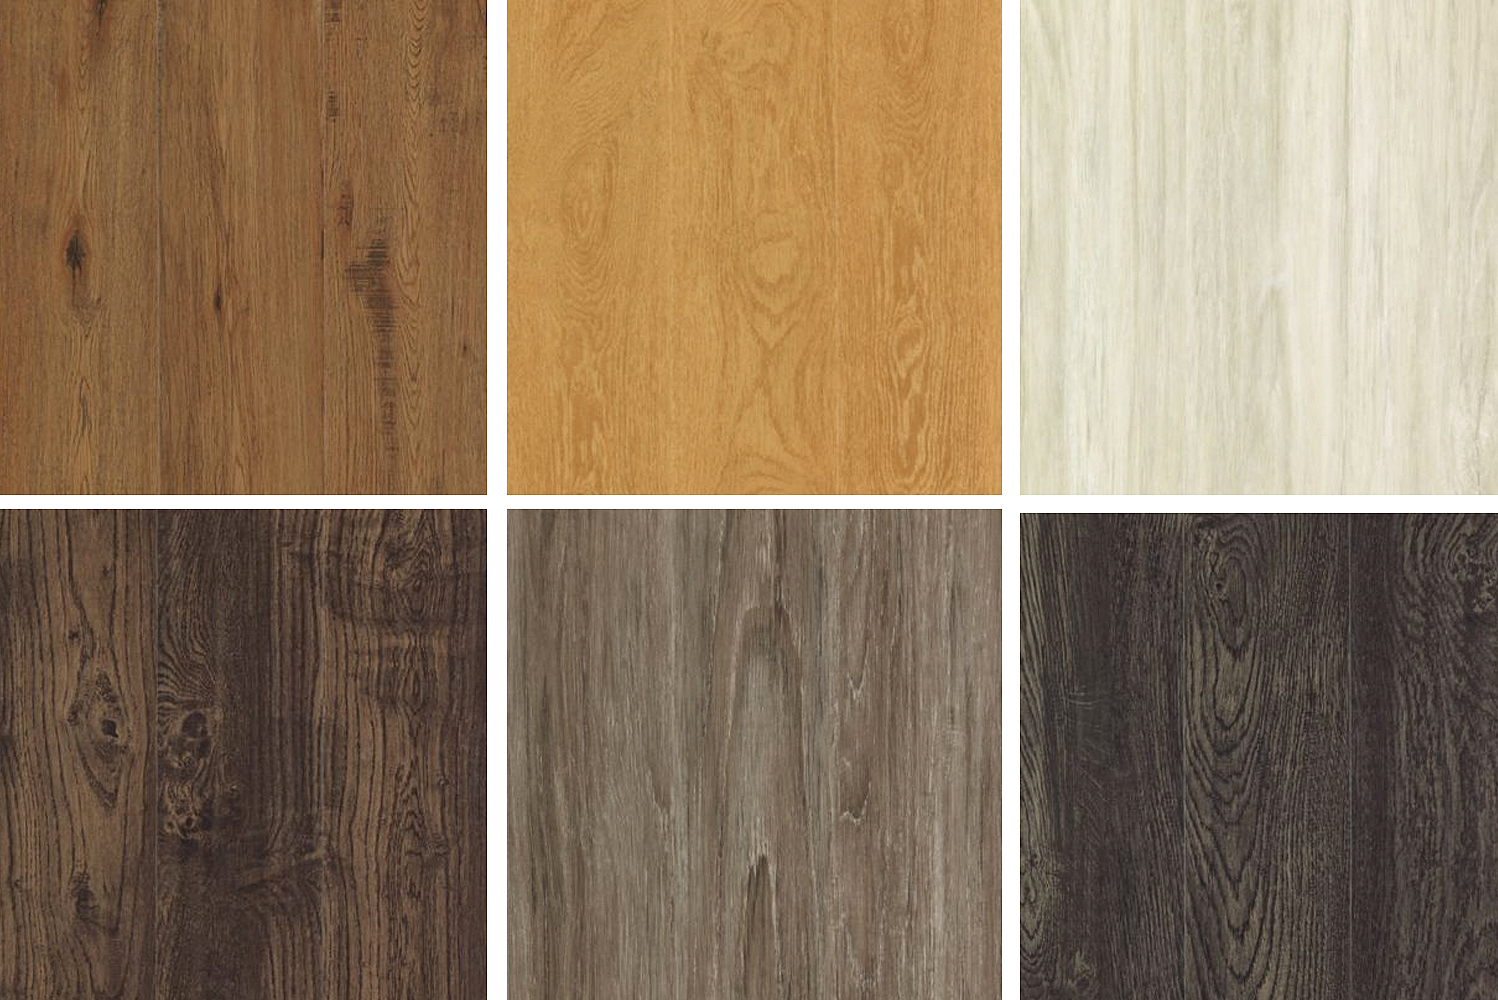 There are 10 colors available, ranging from almost white Dover to dark gray Sophisticate with various natural brown tones in between.